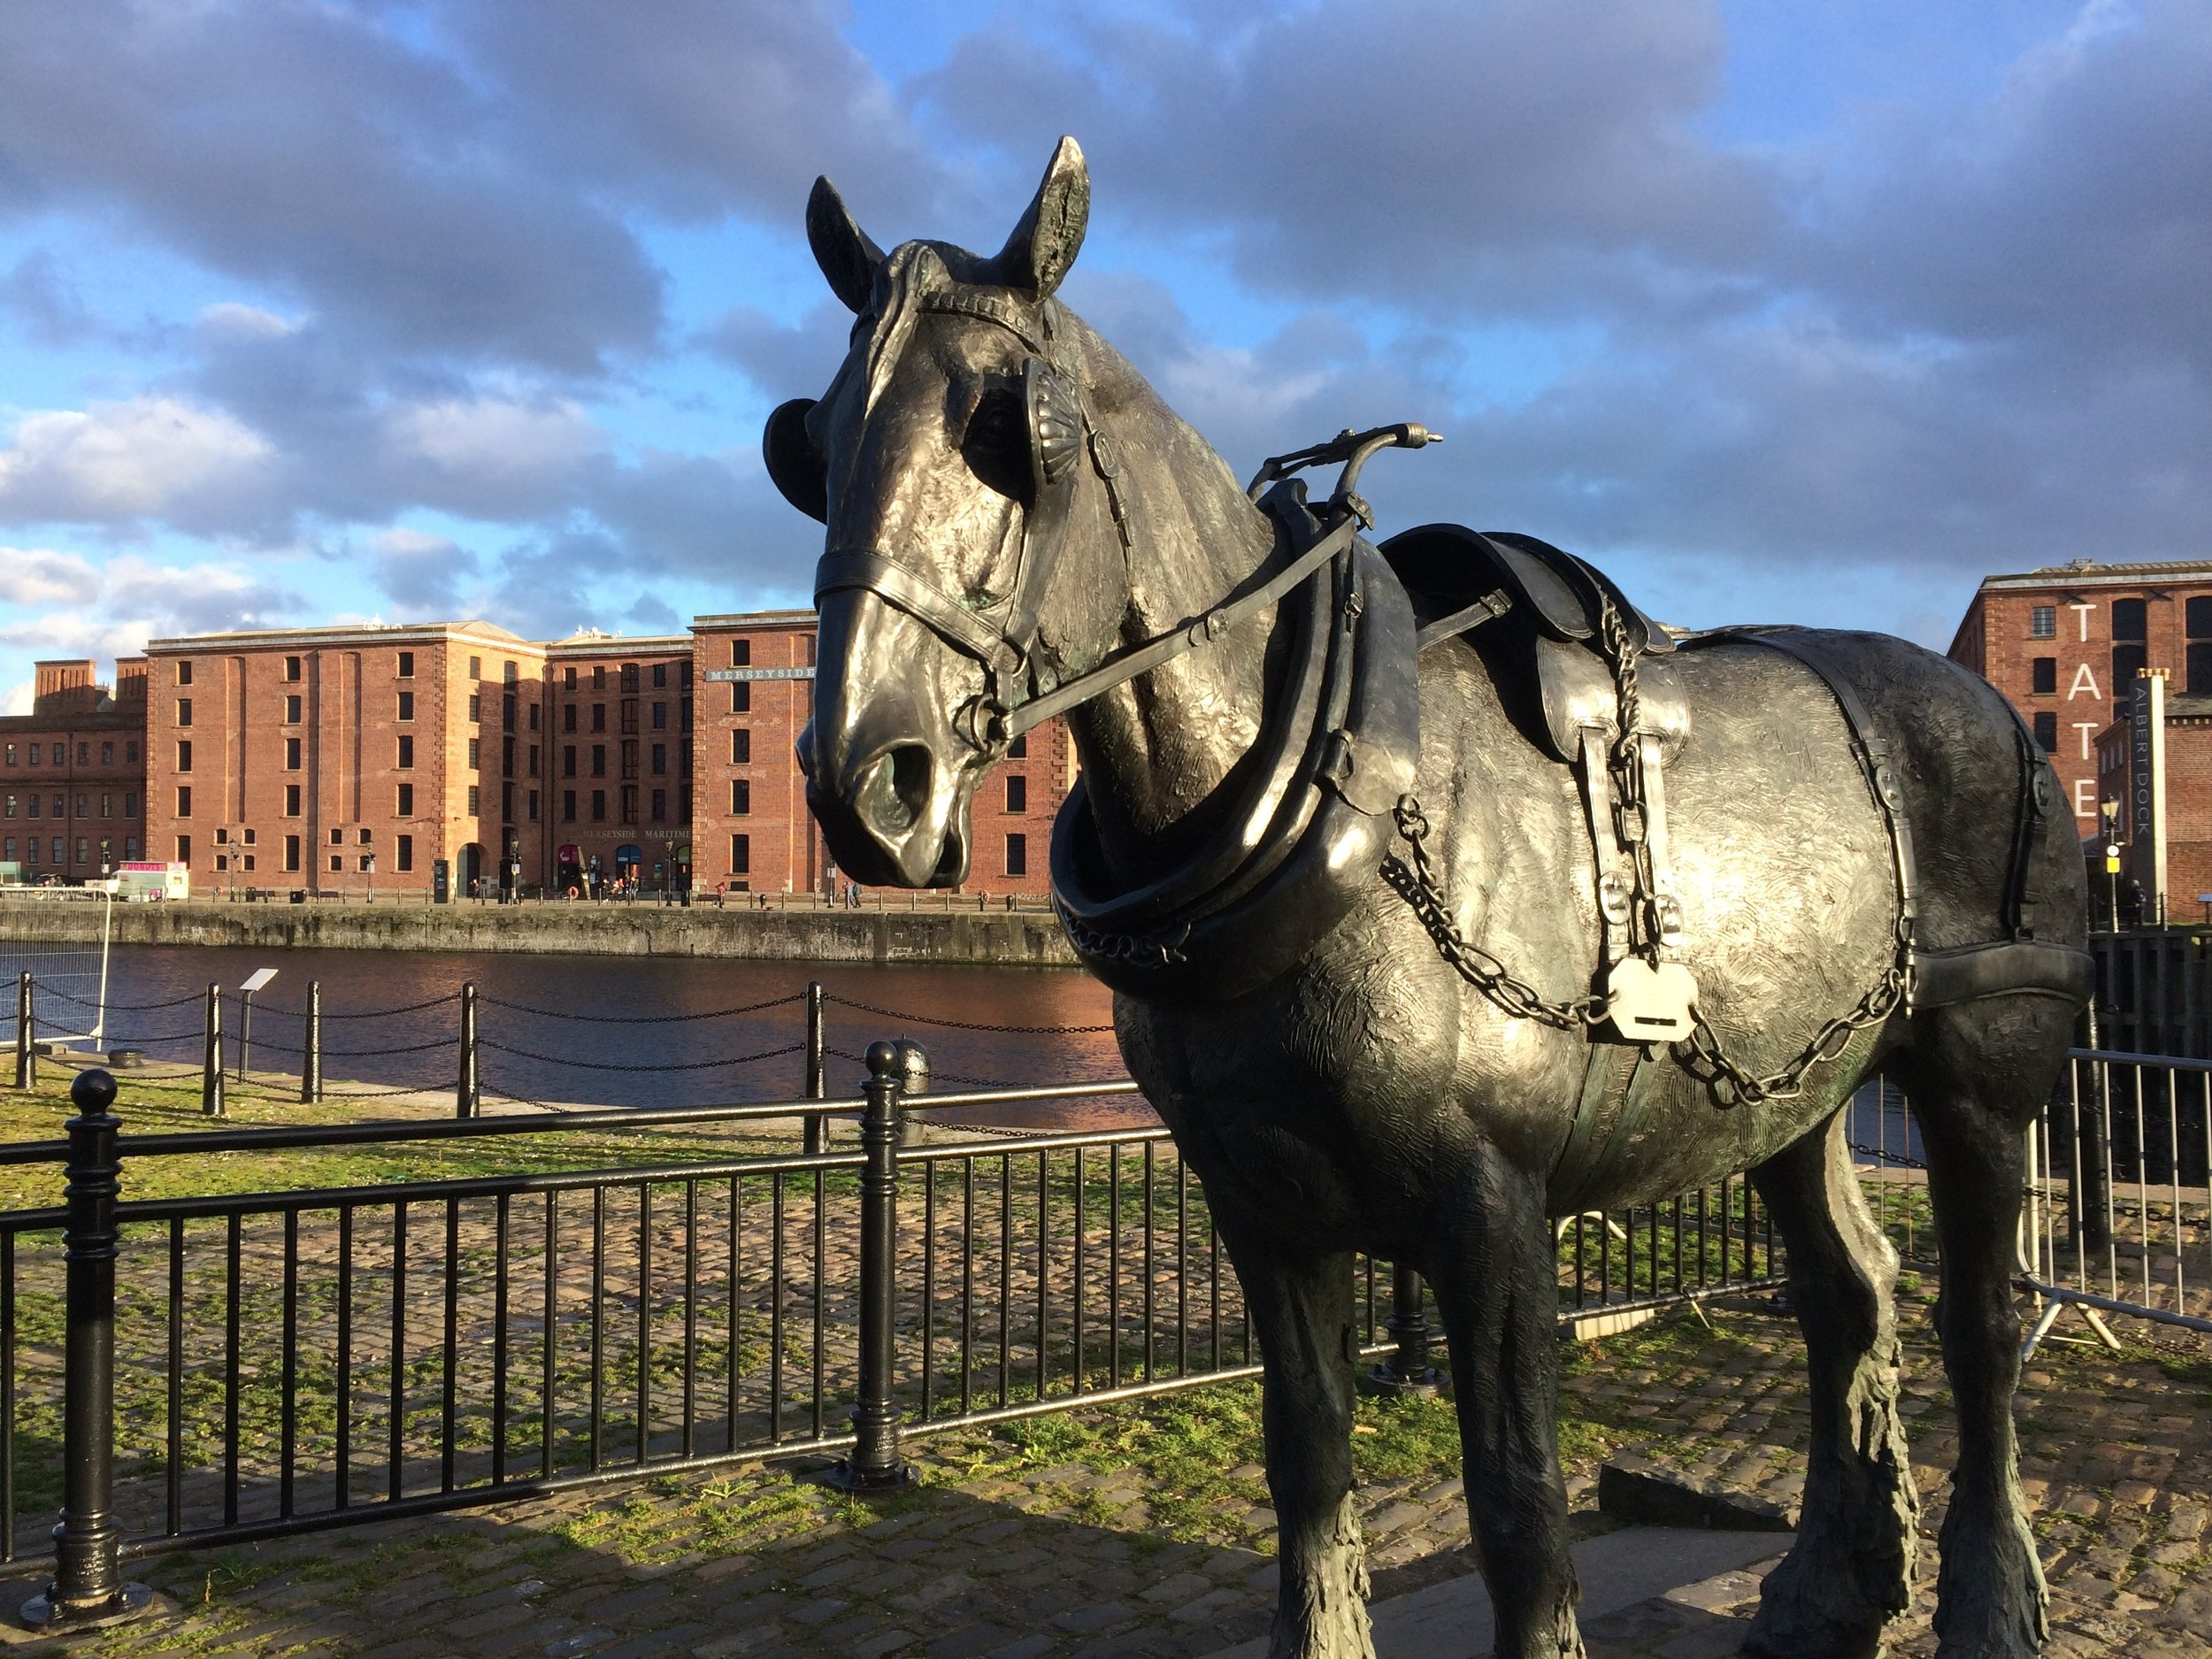 This statue in Liverpool recognises the huge contribution made by horses in the city in the eighteenth and nineteenth centuries. No such memorial exists in London and animals have been largely overlooked in histories of the city.